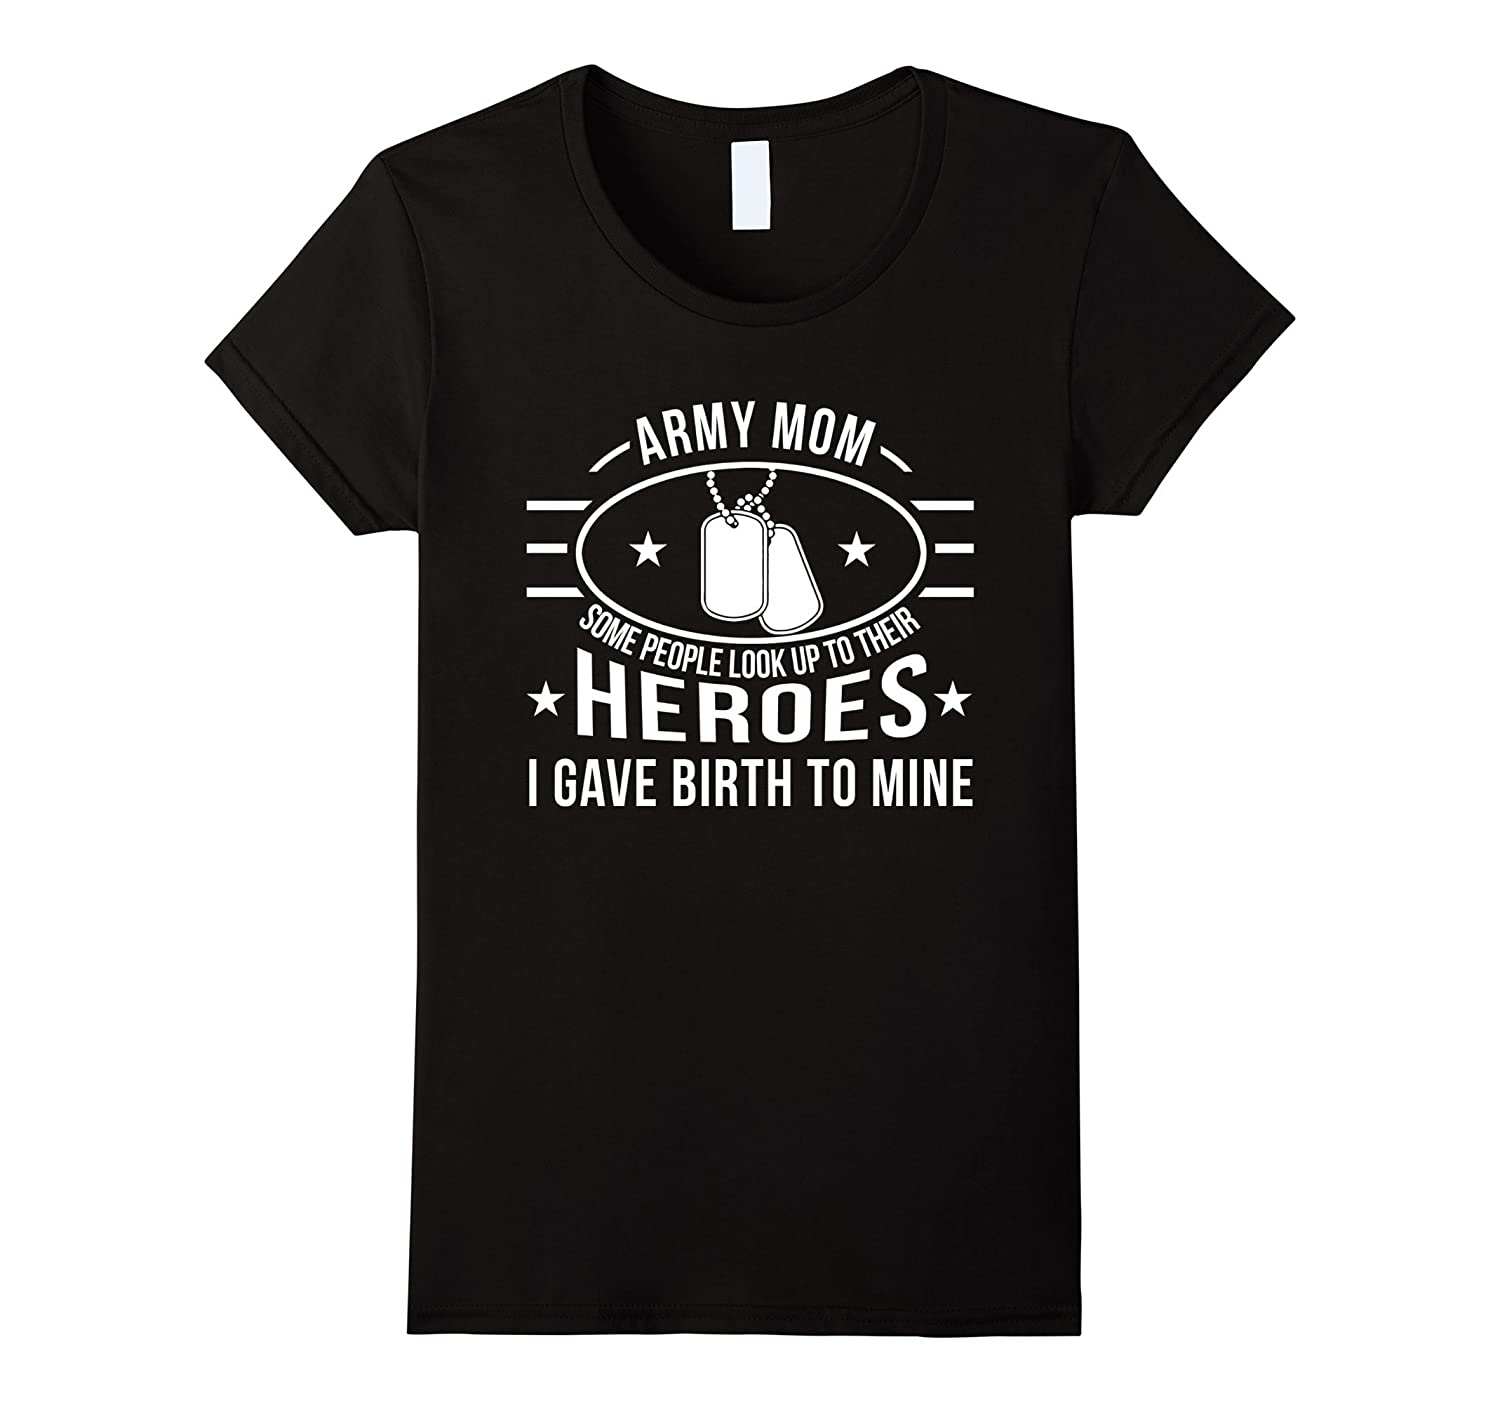 Army mom shirt, some people look up to their heroes